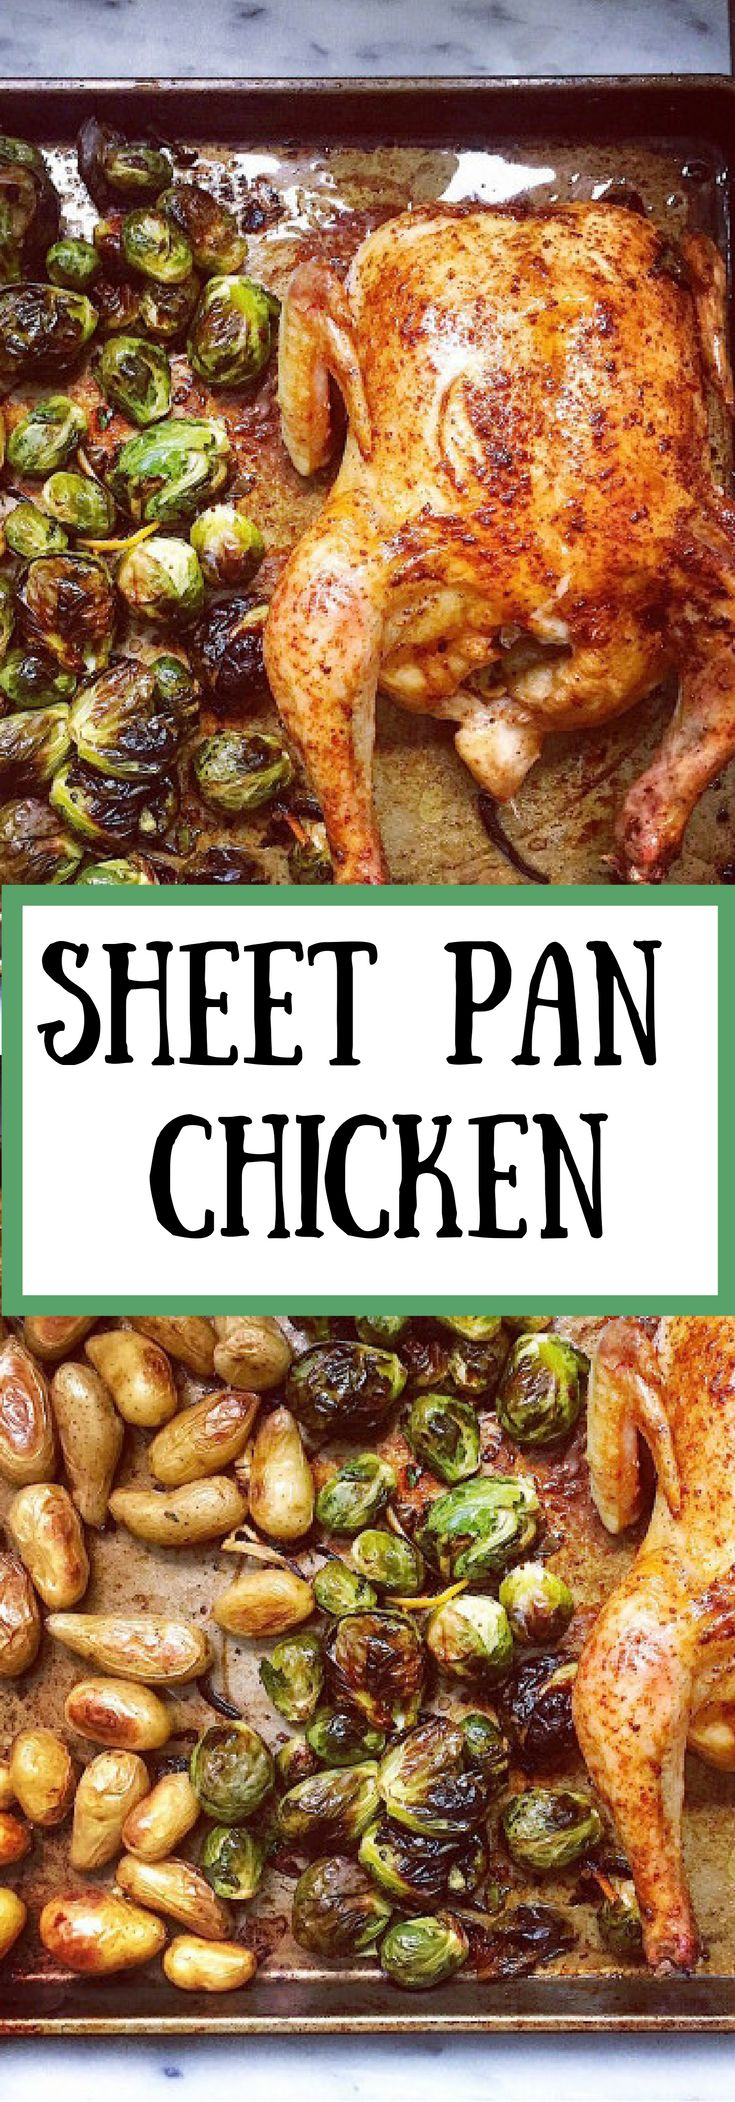 Sheet pan chicken dinner with potatoes and brussels sprouts. So quick to prep and just one pan to clean.